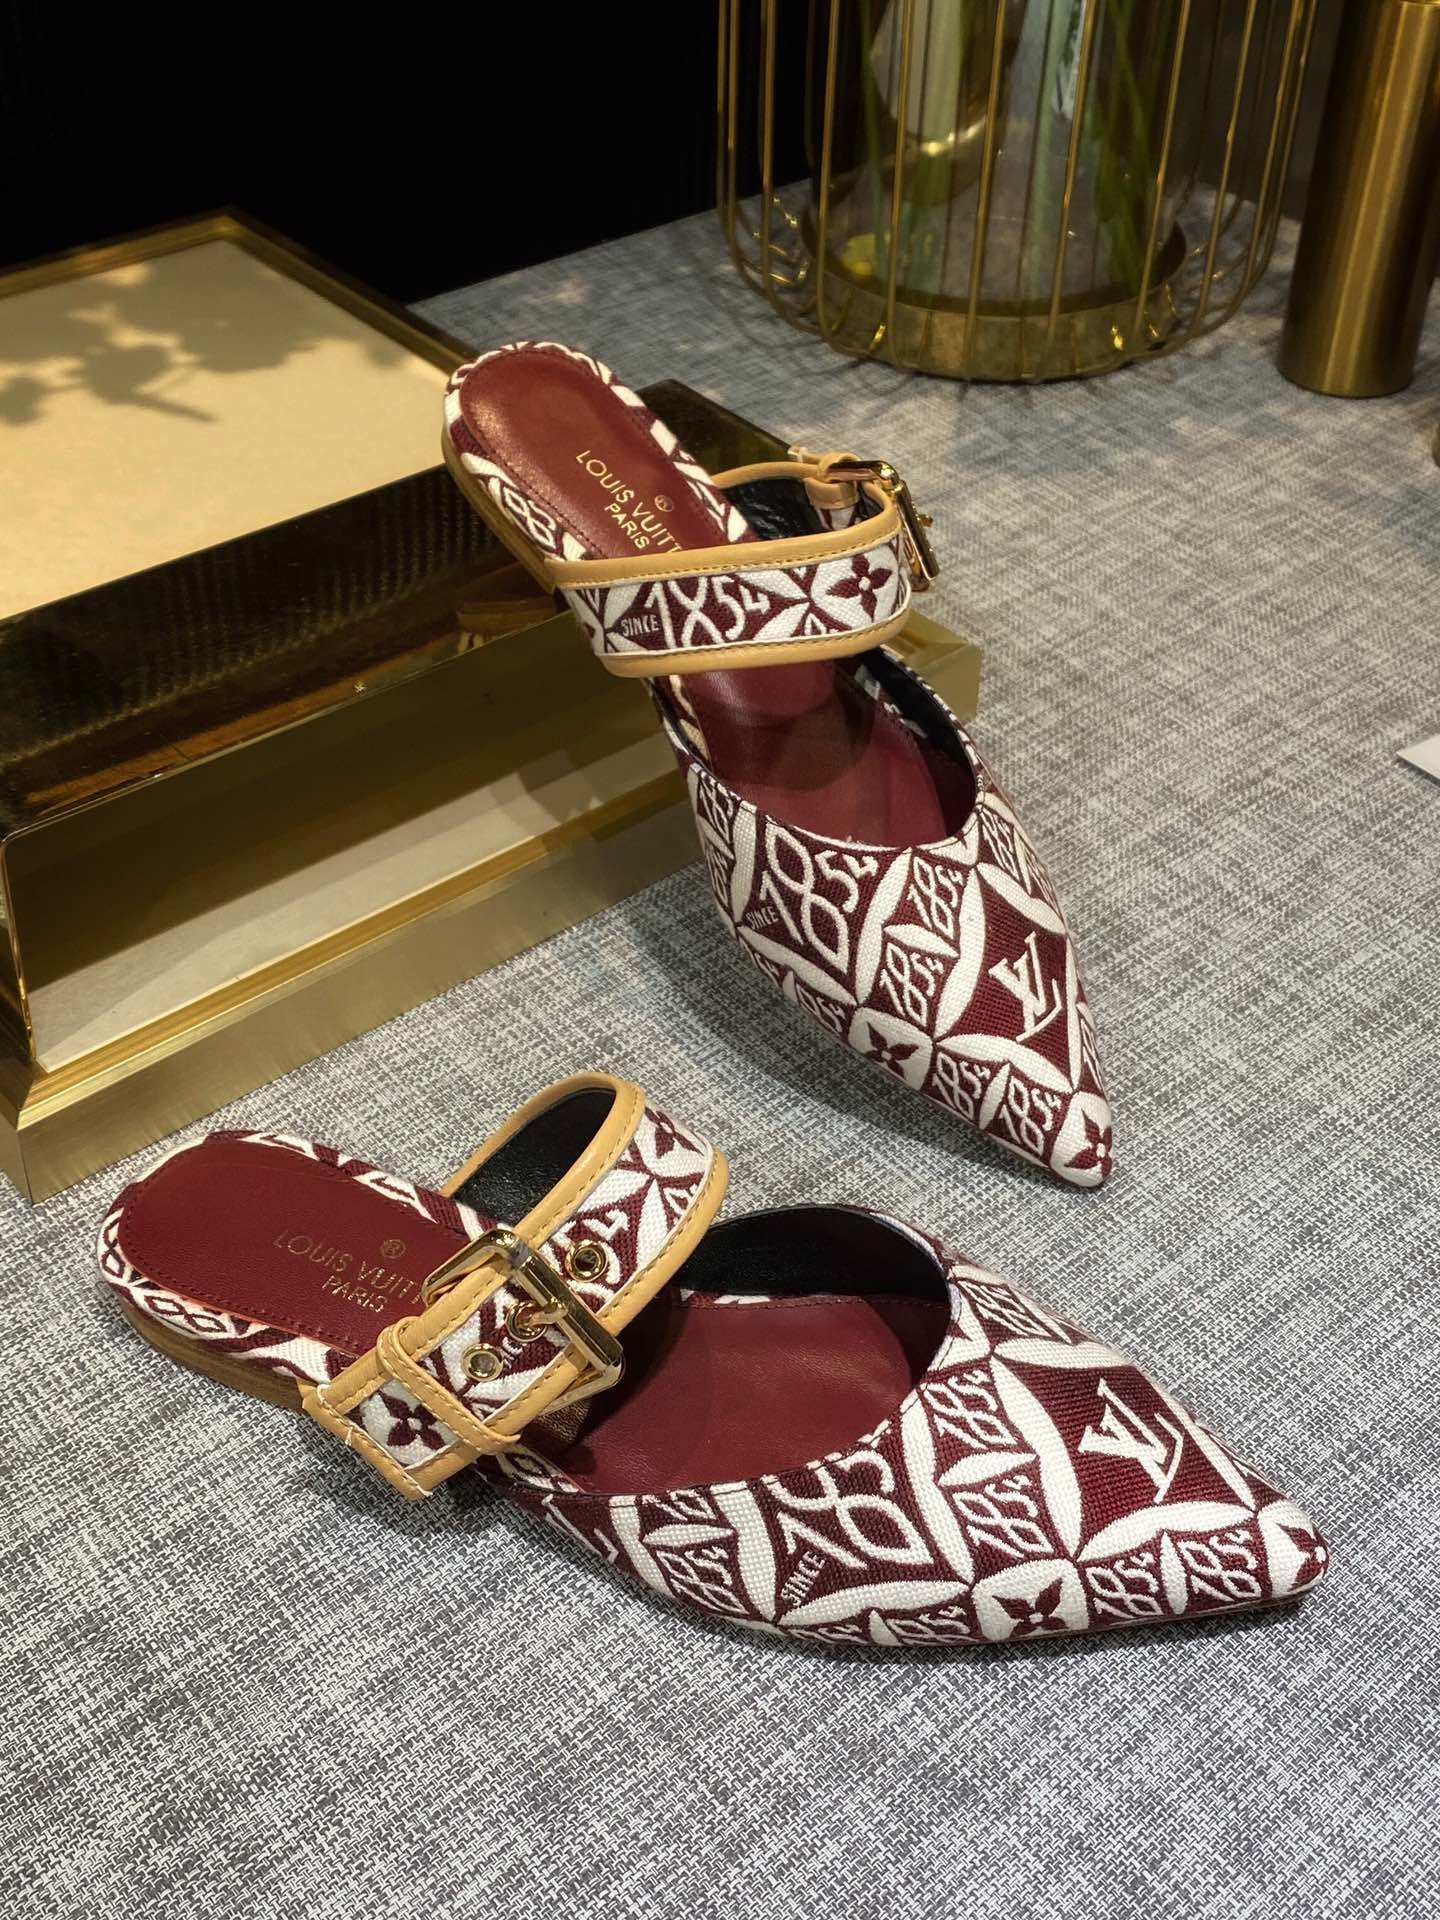 Image of LV Louis Vuitton Women Leather Fashion MONOGRAM CANVAS High heel Shoes SANDALS SLIPPER RED